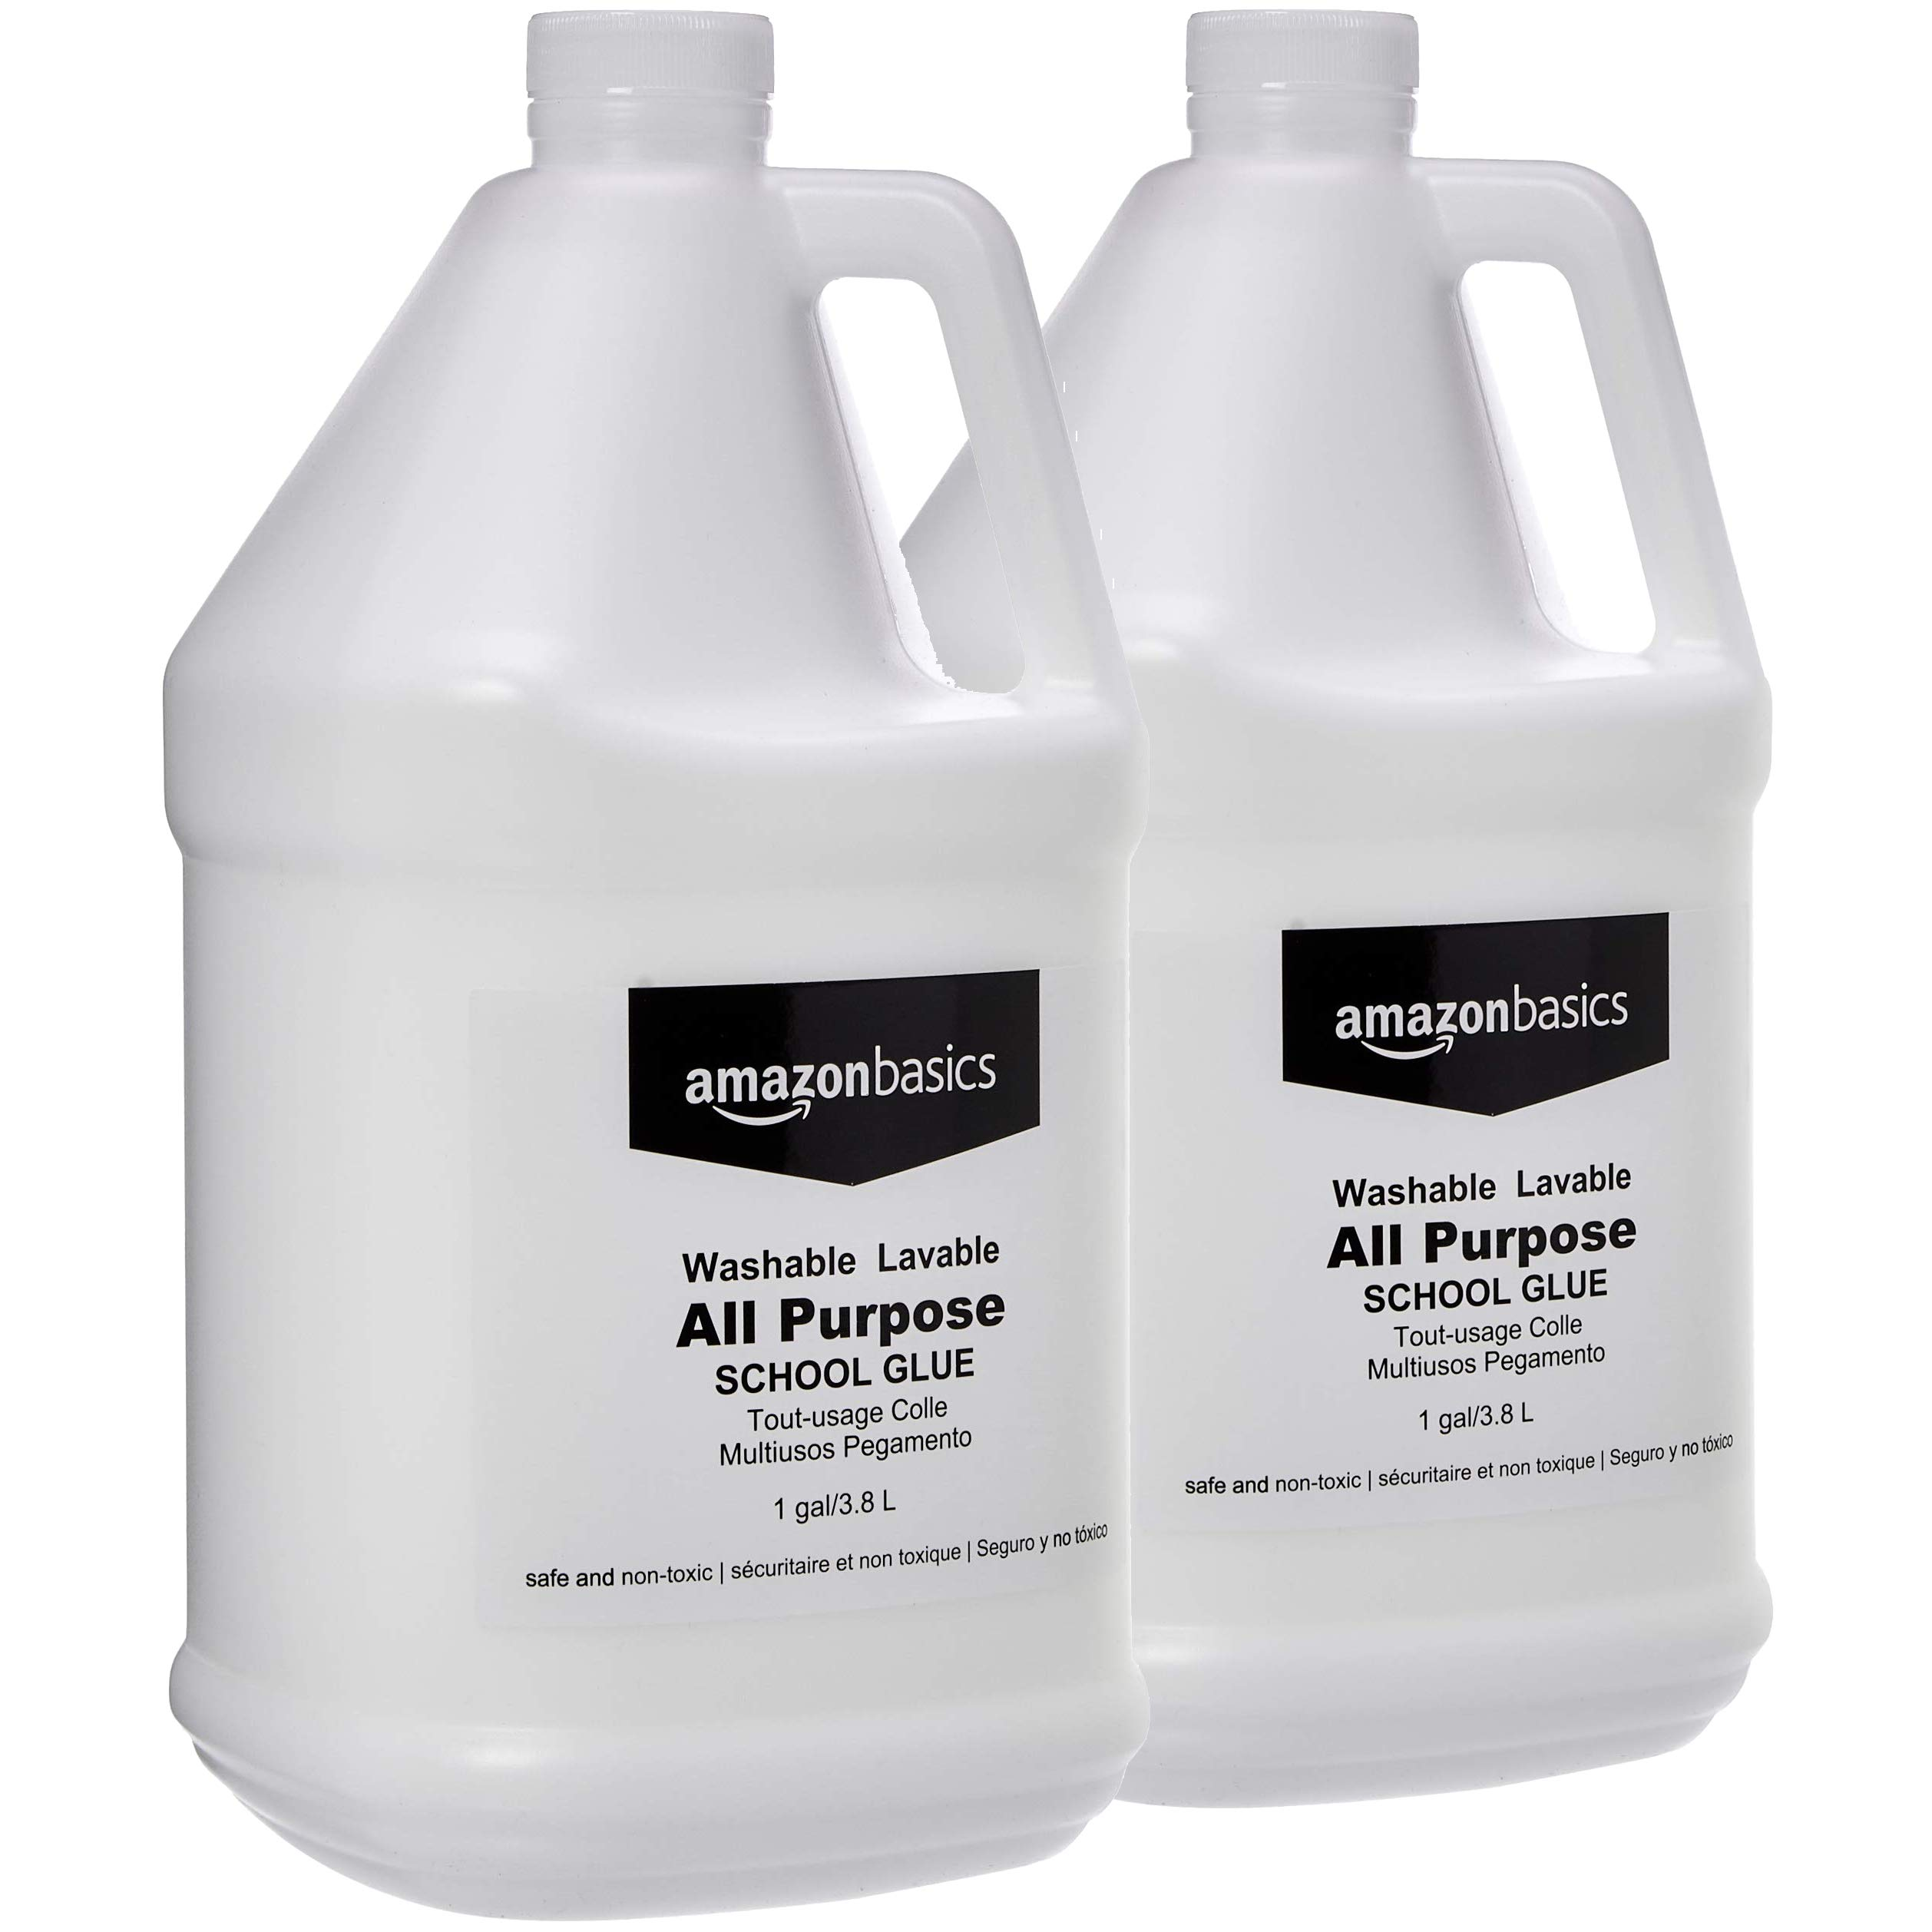 AmazonBasics All Purpose Washable Liquid Glue, Great for Making Slime, 1 Gallon Bottle, 2-Pack